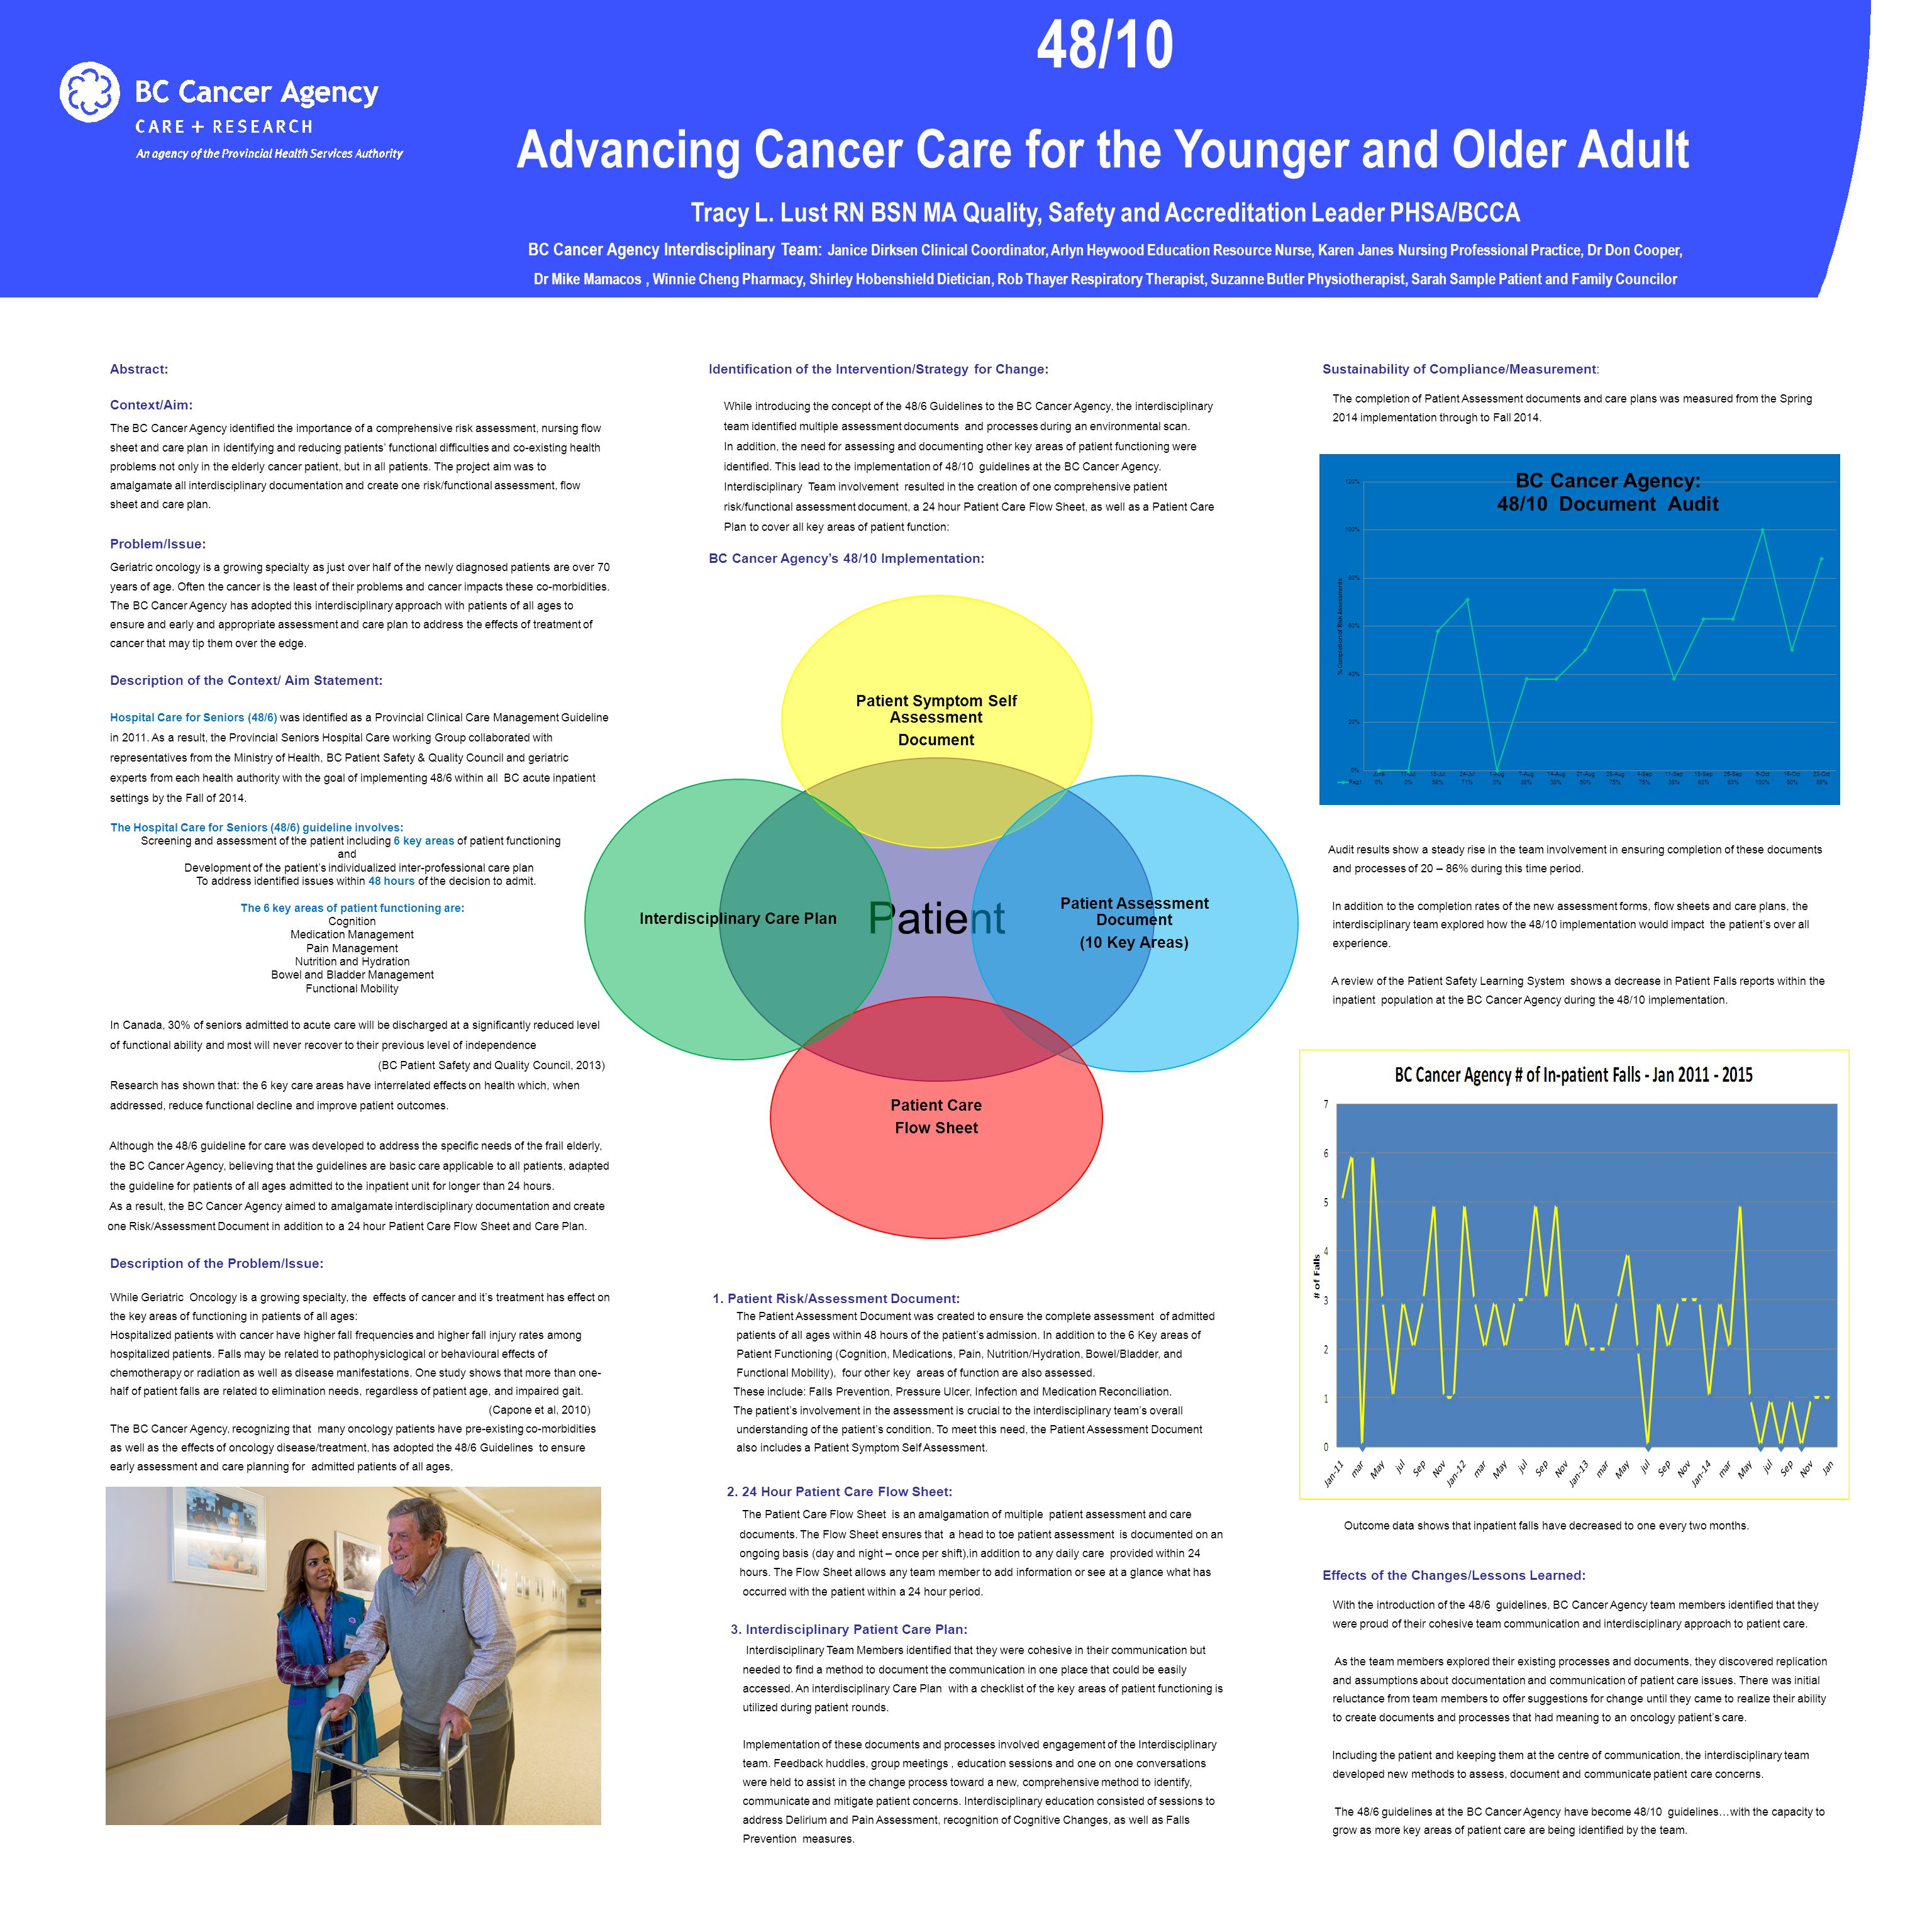 Abstract: Context/Aim: The BC Cancer Agency identified the importance of a comprehensive risk assessment, nursing flow sheet and care plan in identifying and reducing patients' functional difficulties and co-existing health problems not only in the elderly cancer patient, but in all patients.